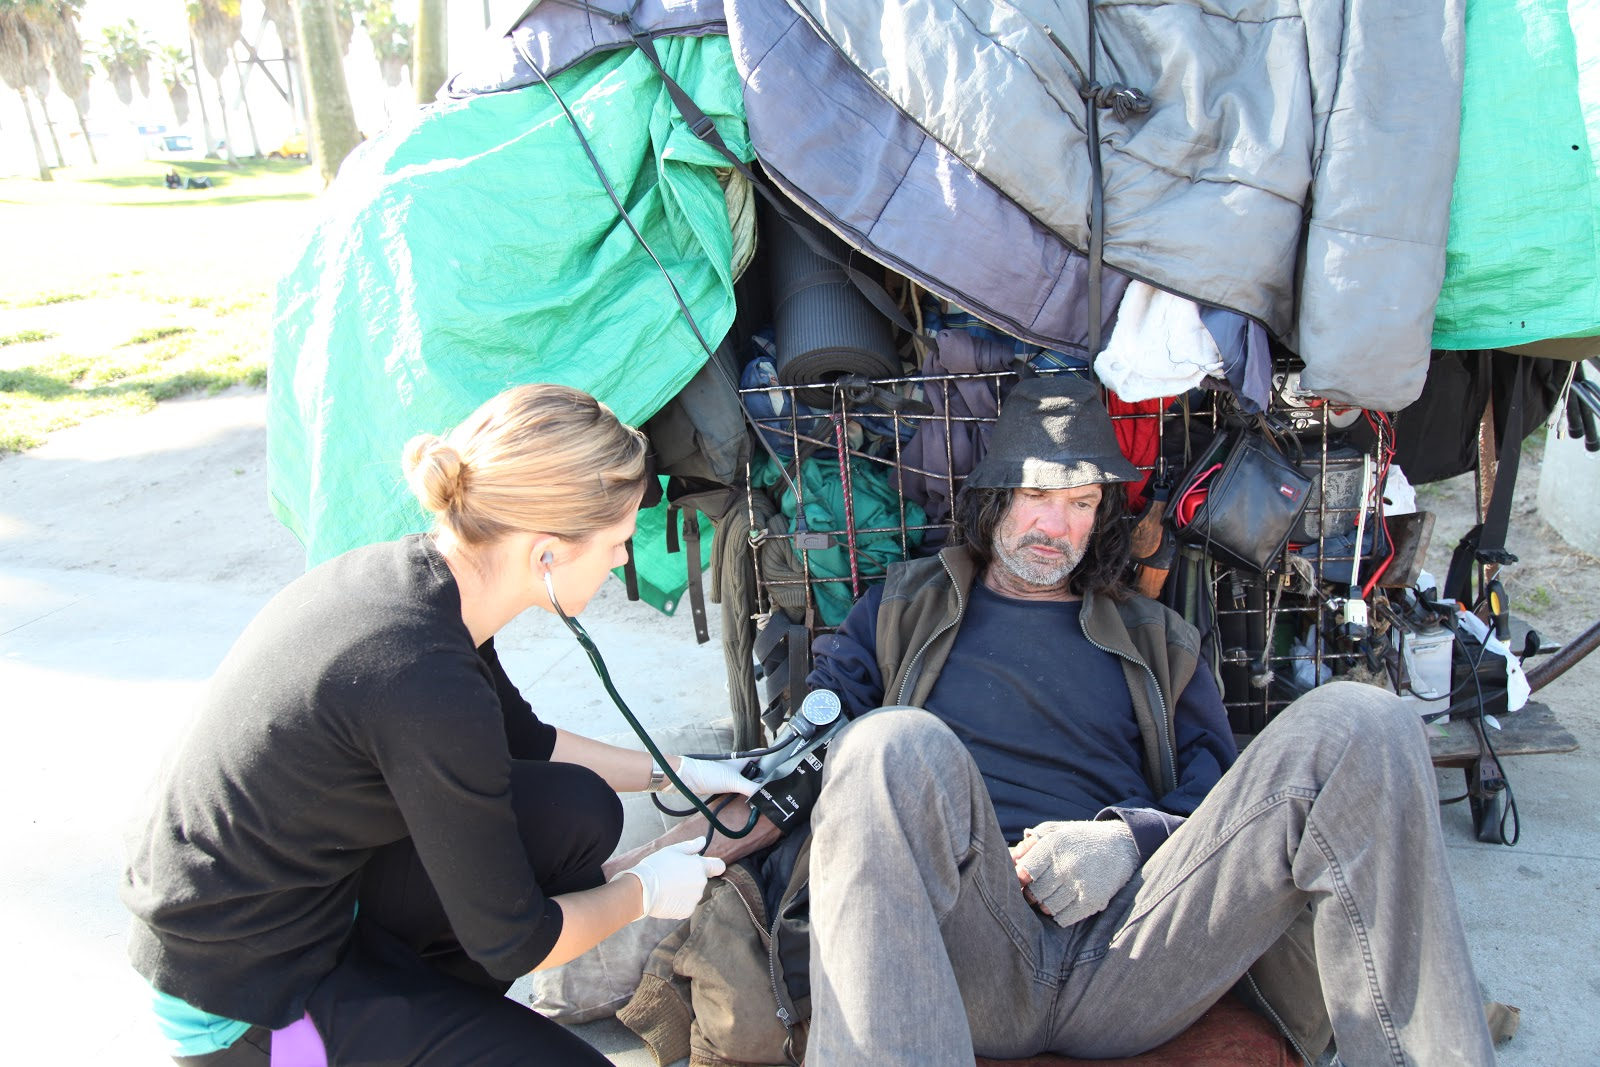 Checking vital signs in the field. Taken by Margaret Molloy.